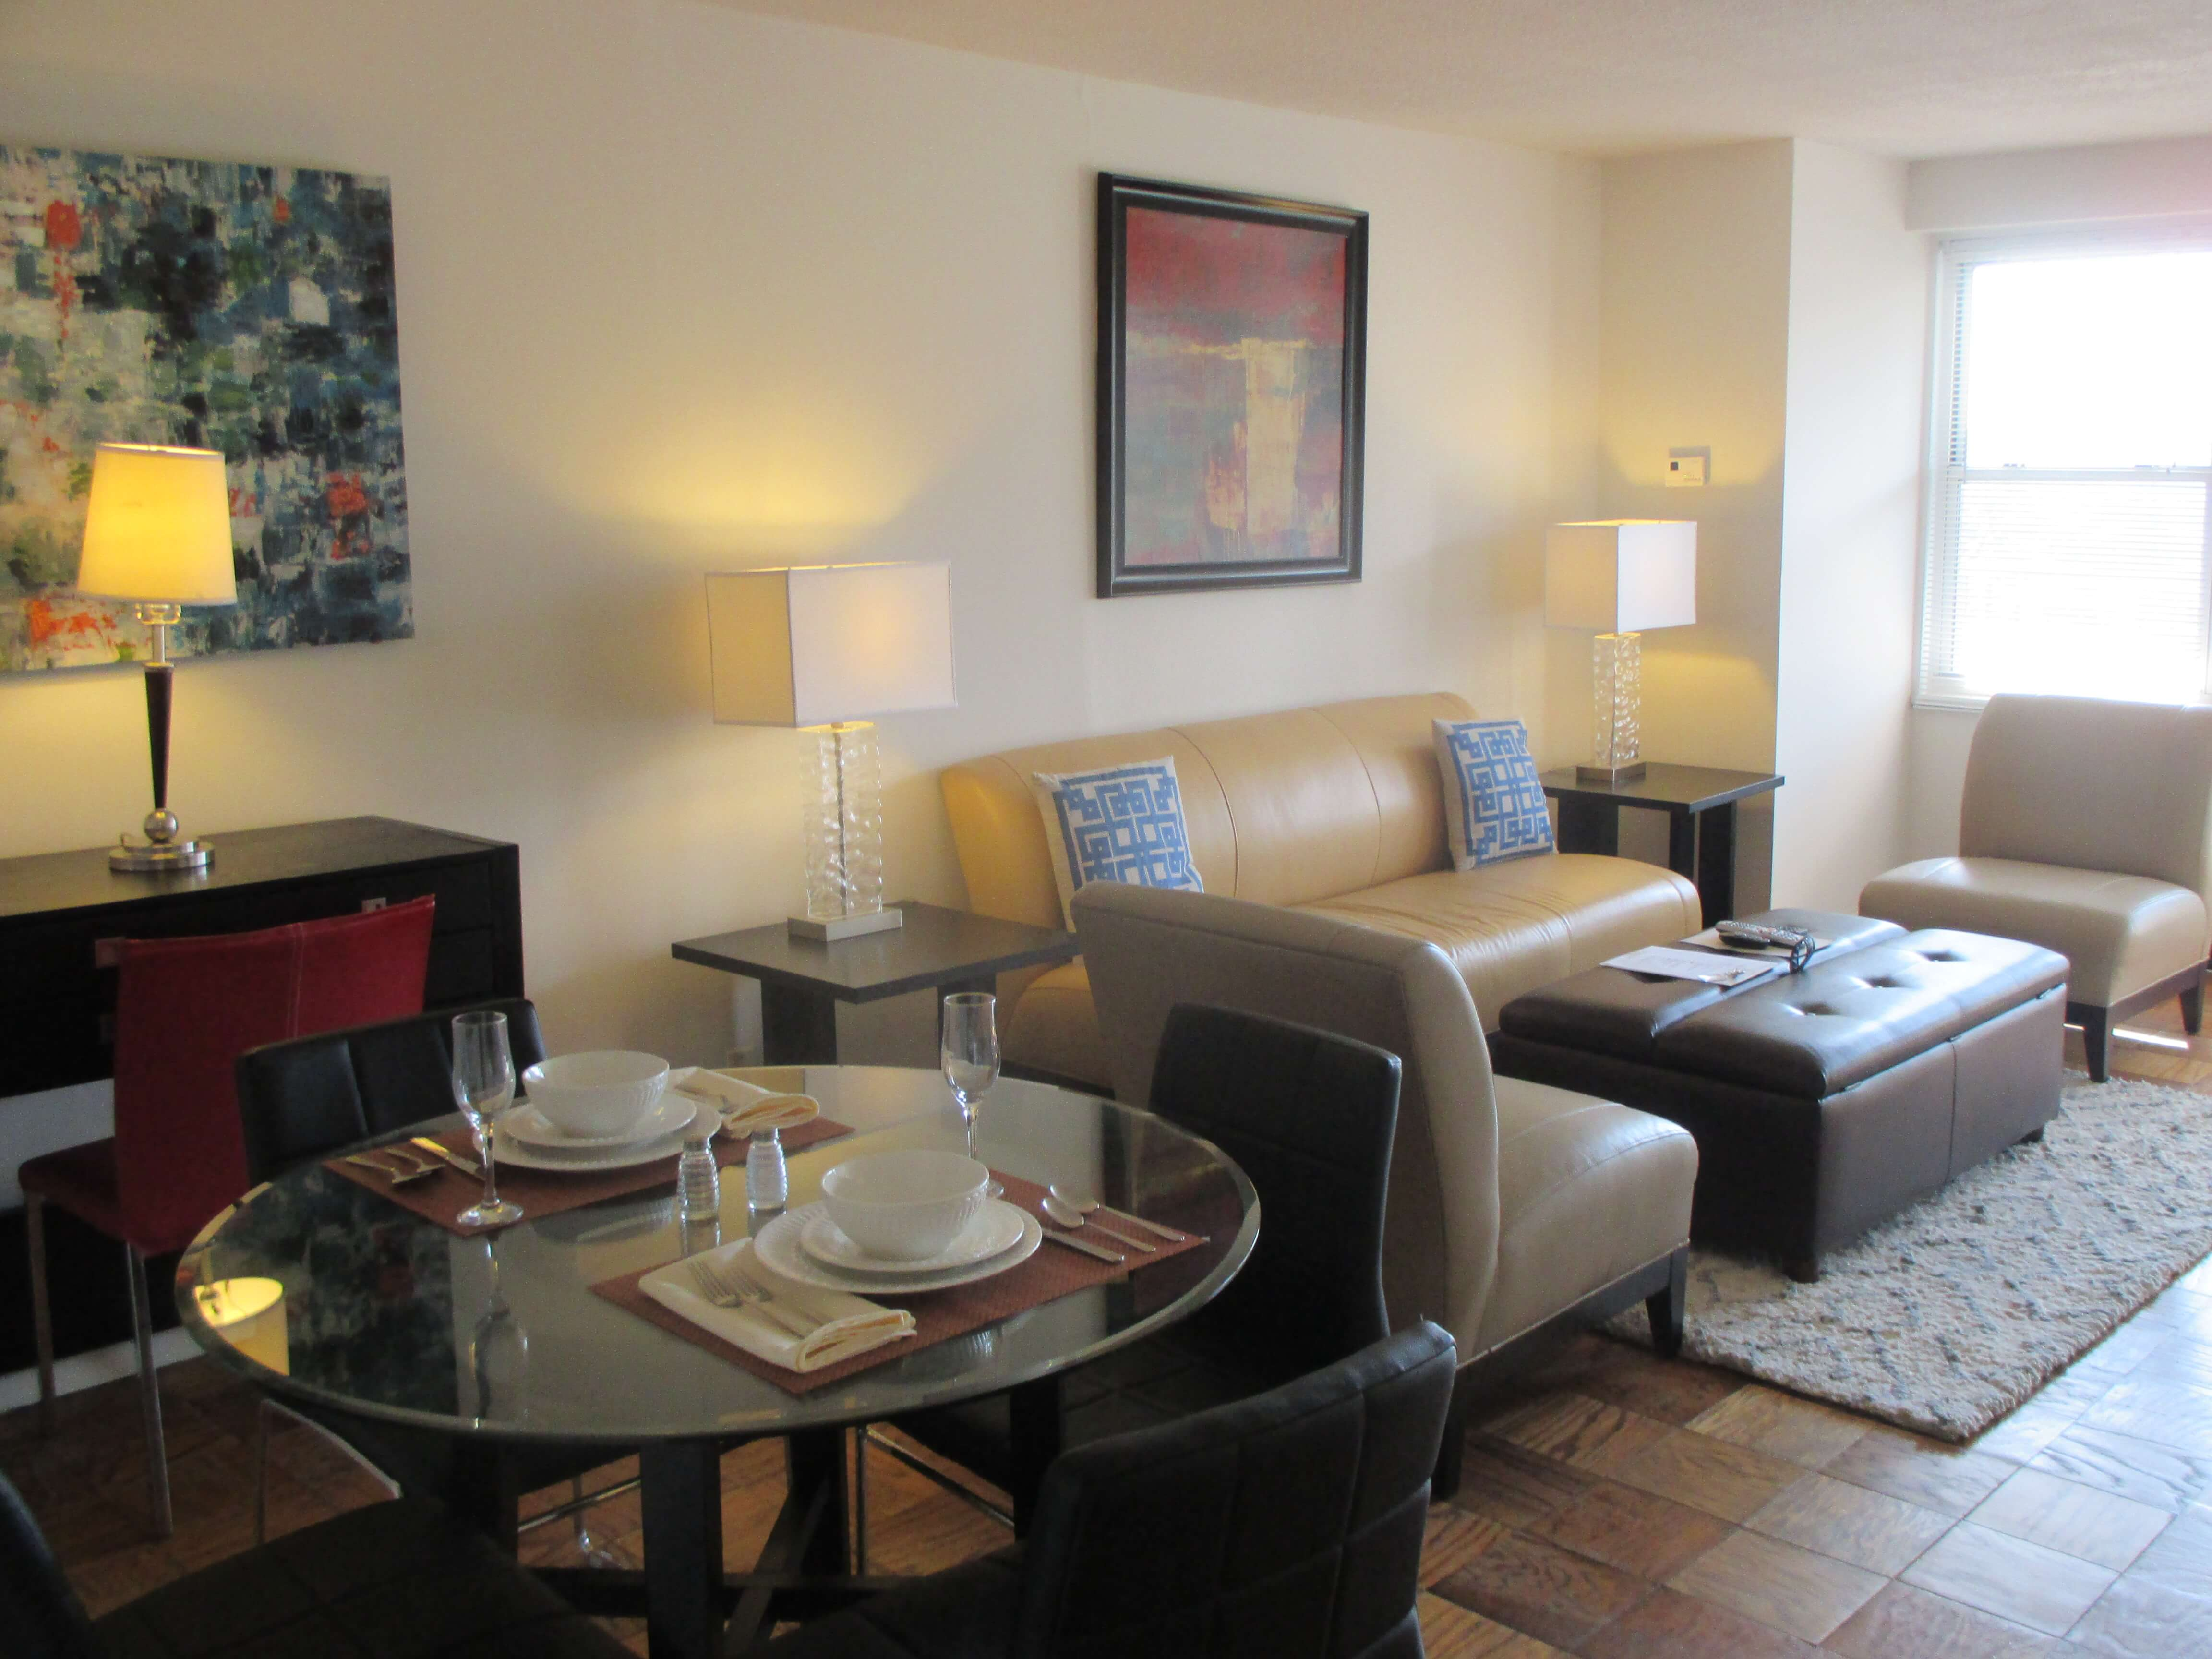 furnished 1 bedroom apartment for rent in mission hill boston area